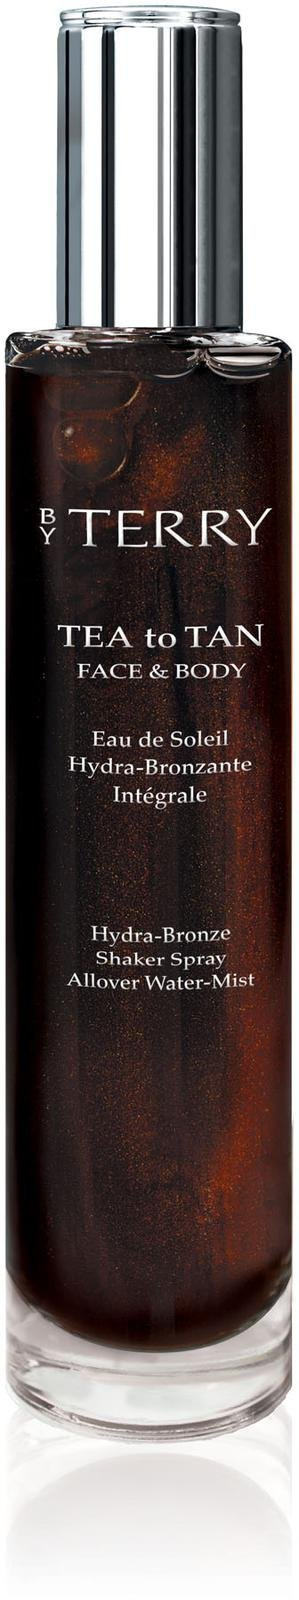 By Terry Tea to Tan Hydra-Bronze Shaker Spray Allover Water Mist, 3.38 Ounce